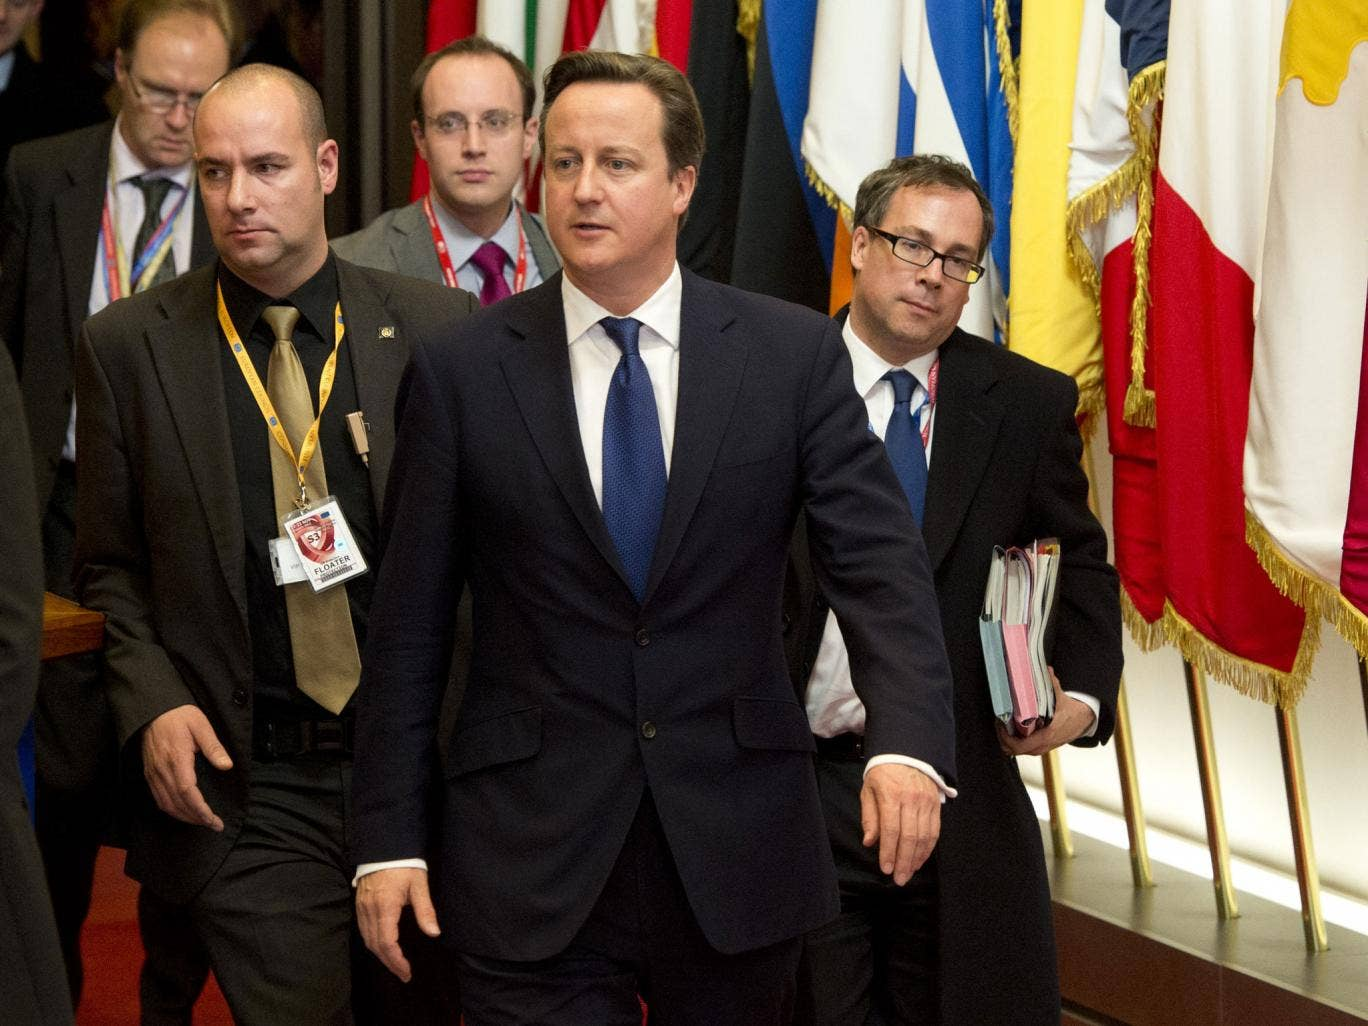 David Cameron, centre, departs after the EU summit in Brussels